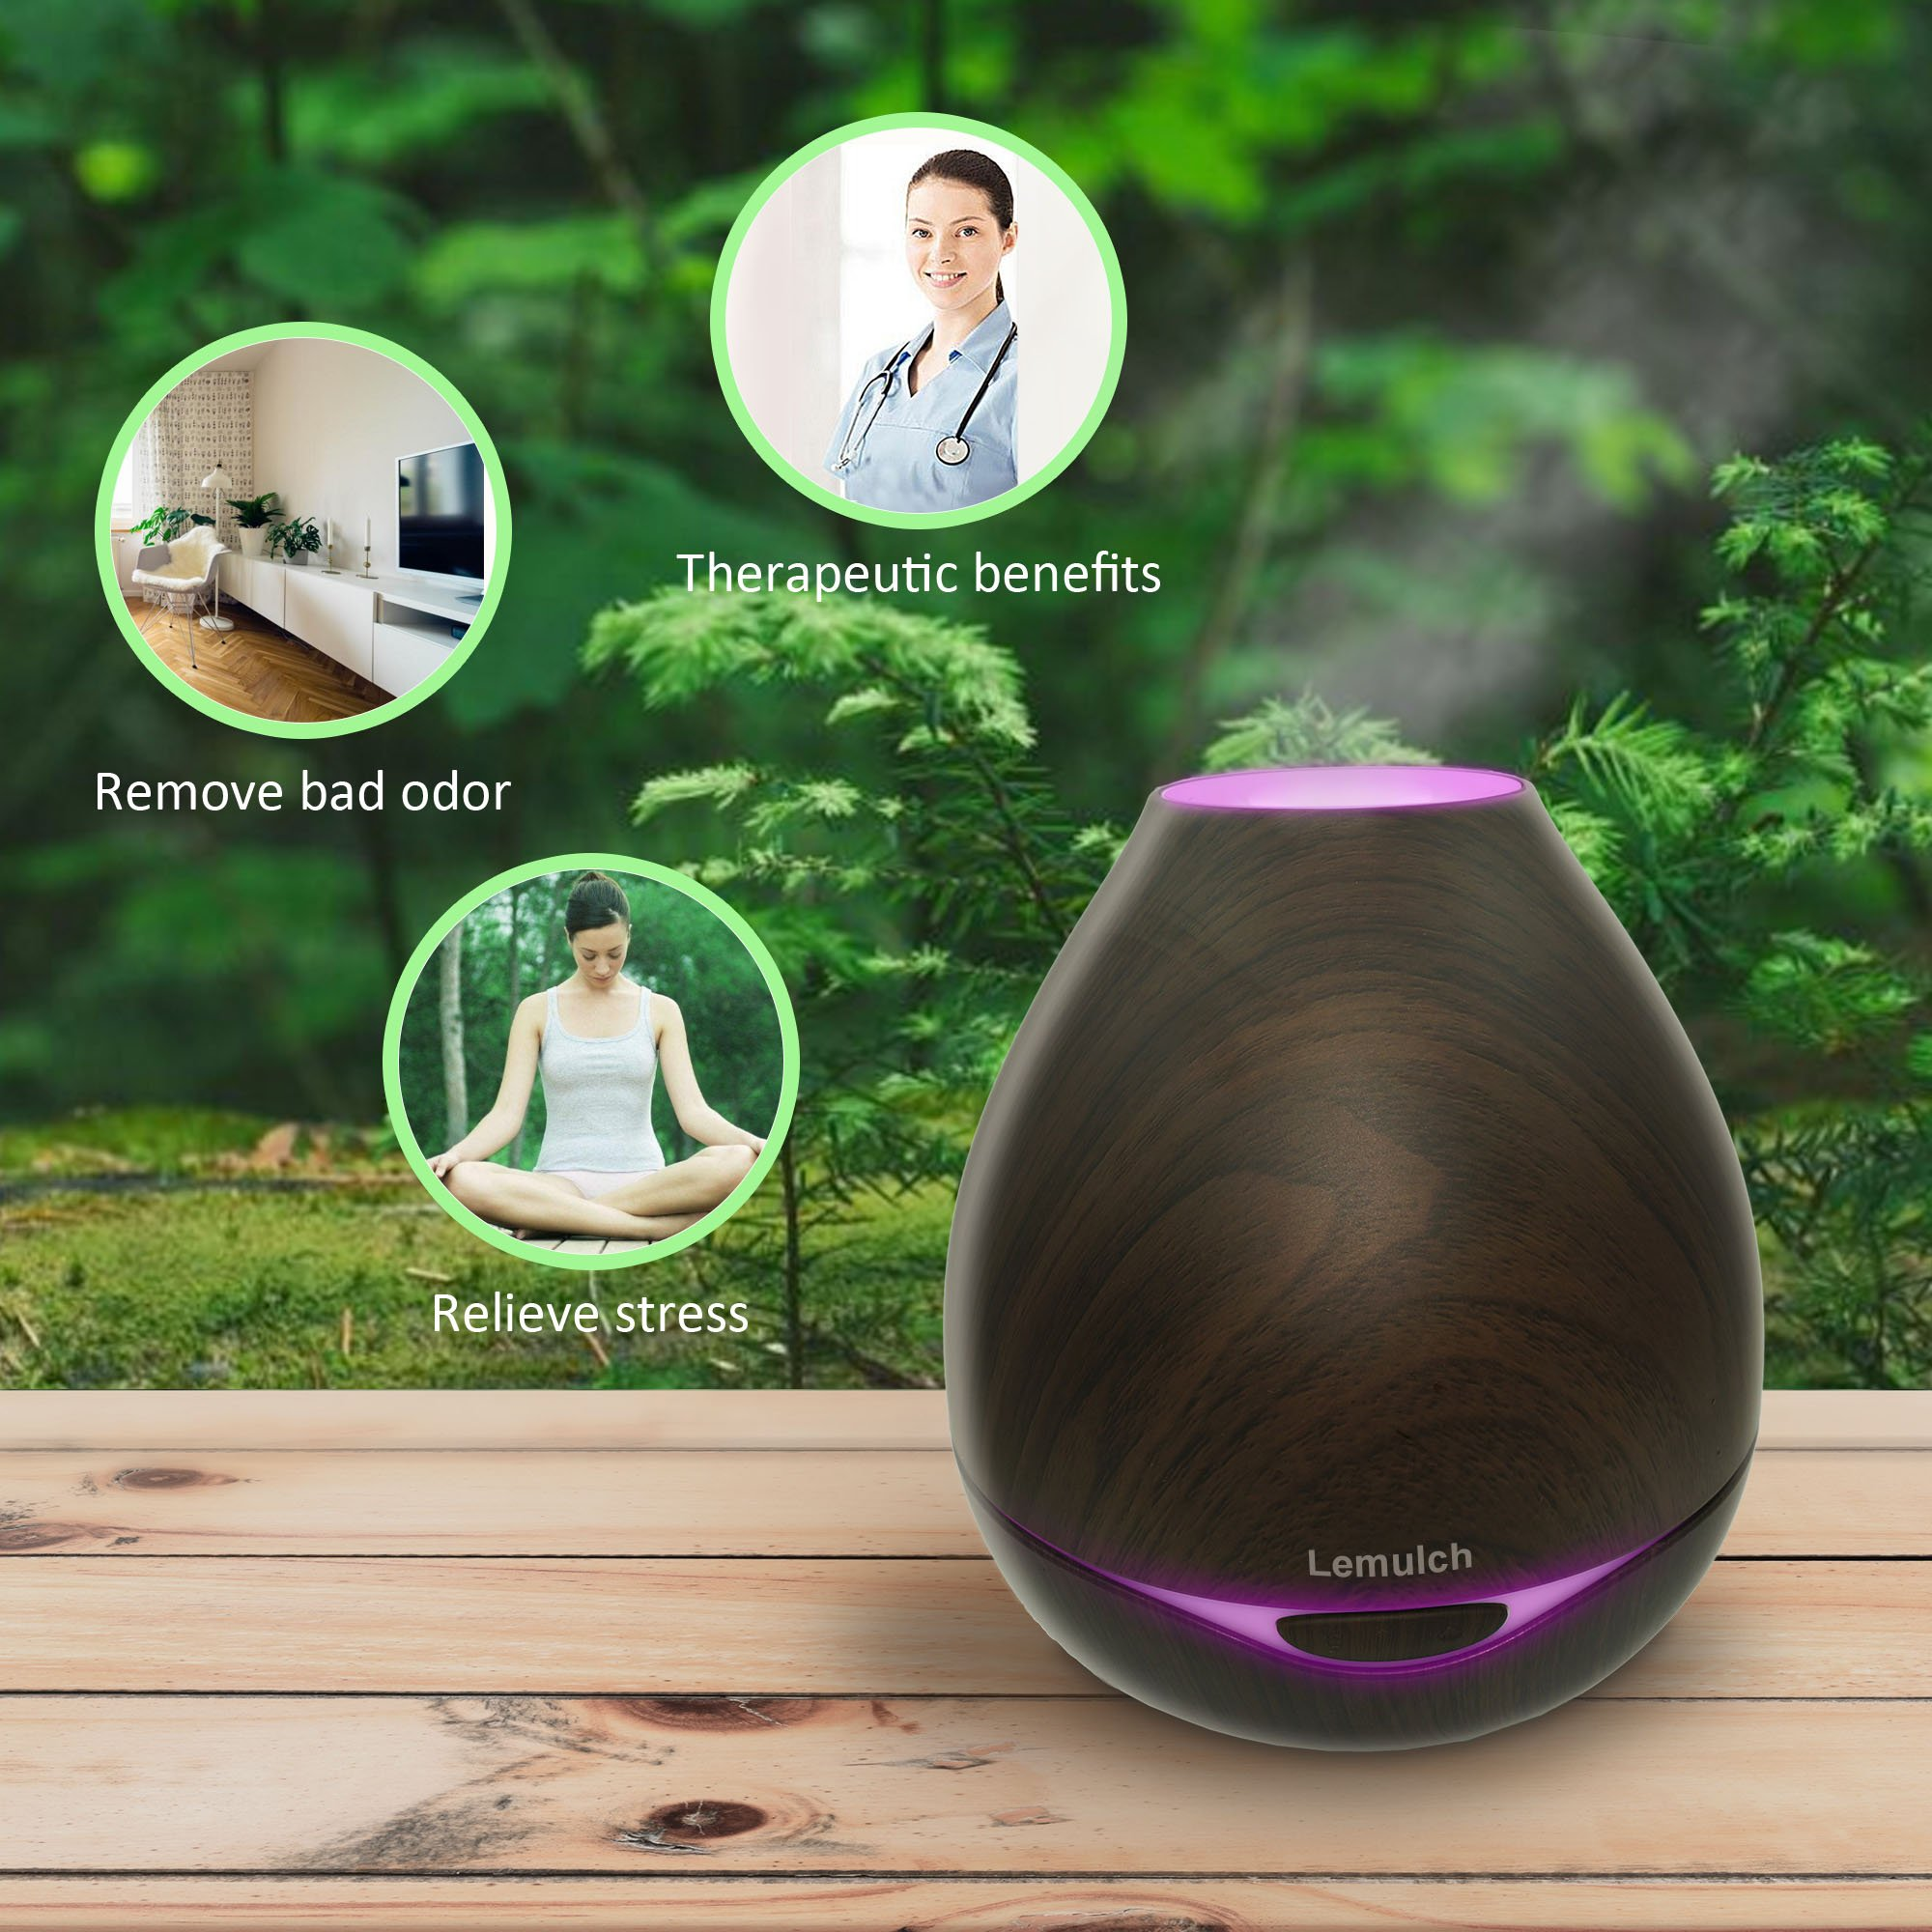 Lemulch Wood Grain 300ml Aromatherapy Diffusers&Cool Mist Humidifier for Dorm Baby Home with Adjustable Mist Mode, Lights Changing, Espresso by Lemulch (Image #2)